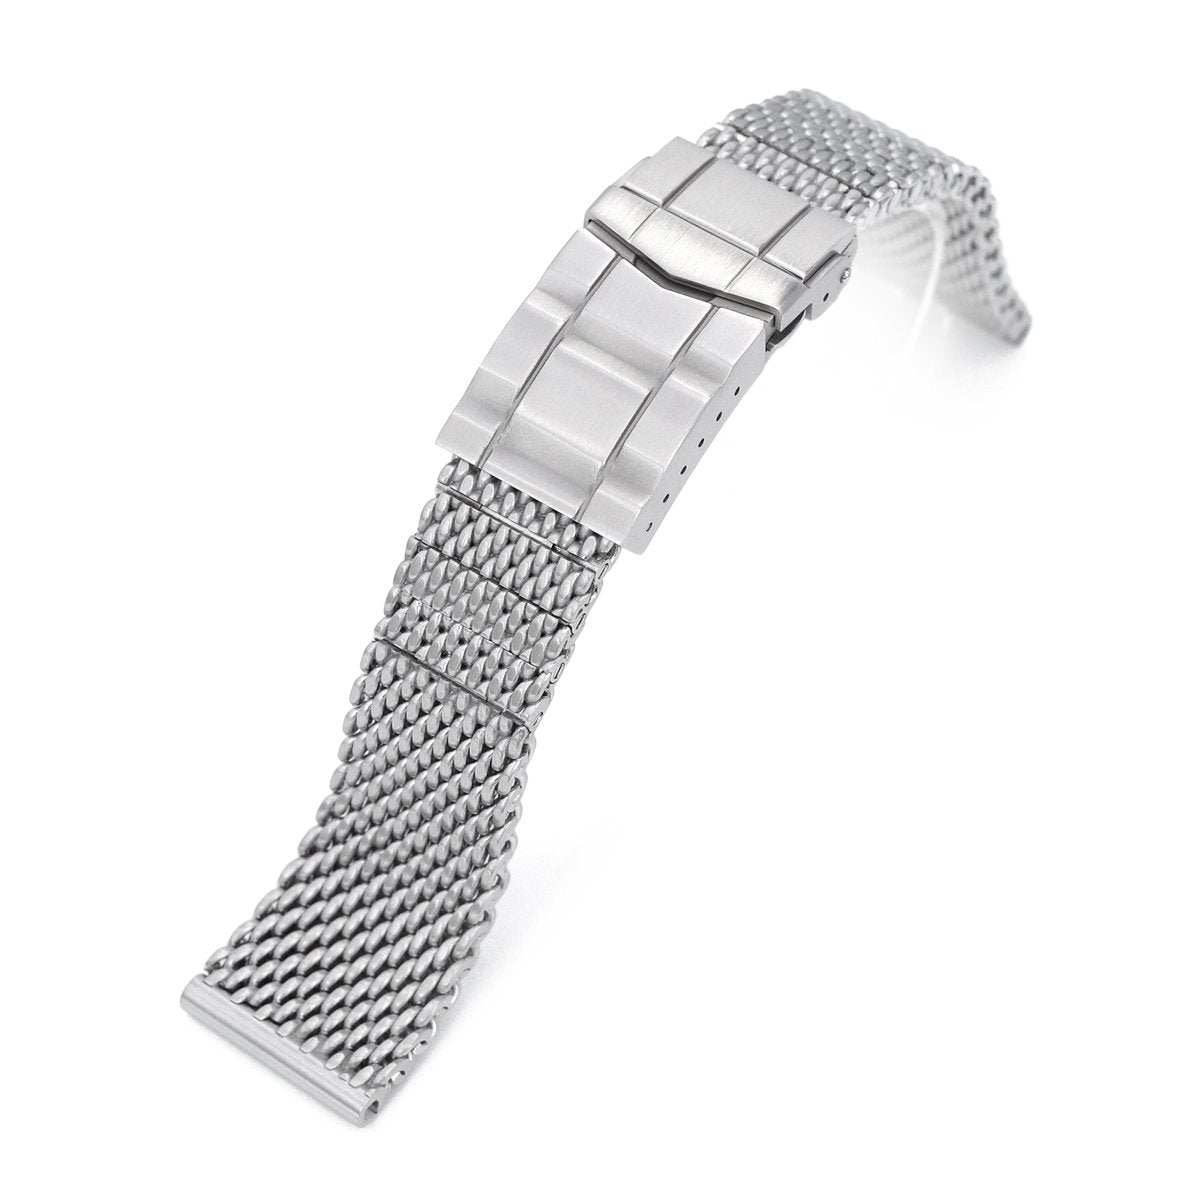 20mm 22mm Solid End Massy Mesh Band Stainless Steel Watch Bracelet SUB Diver Clasp Brushed Strapcode Watch Bands